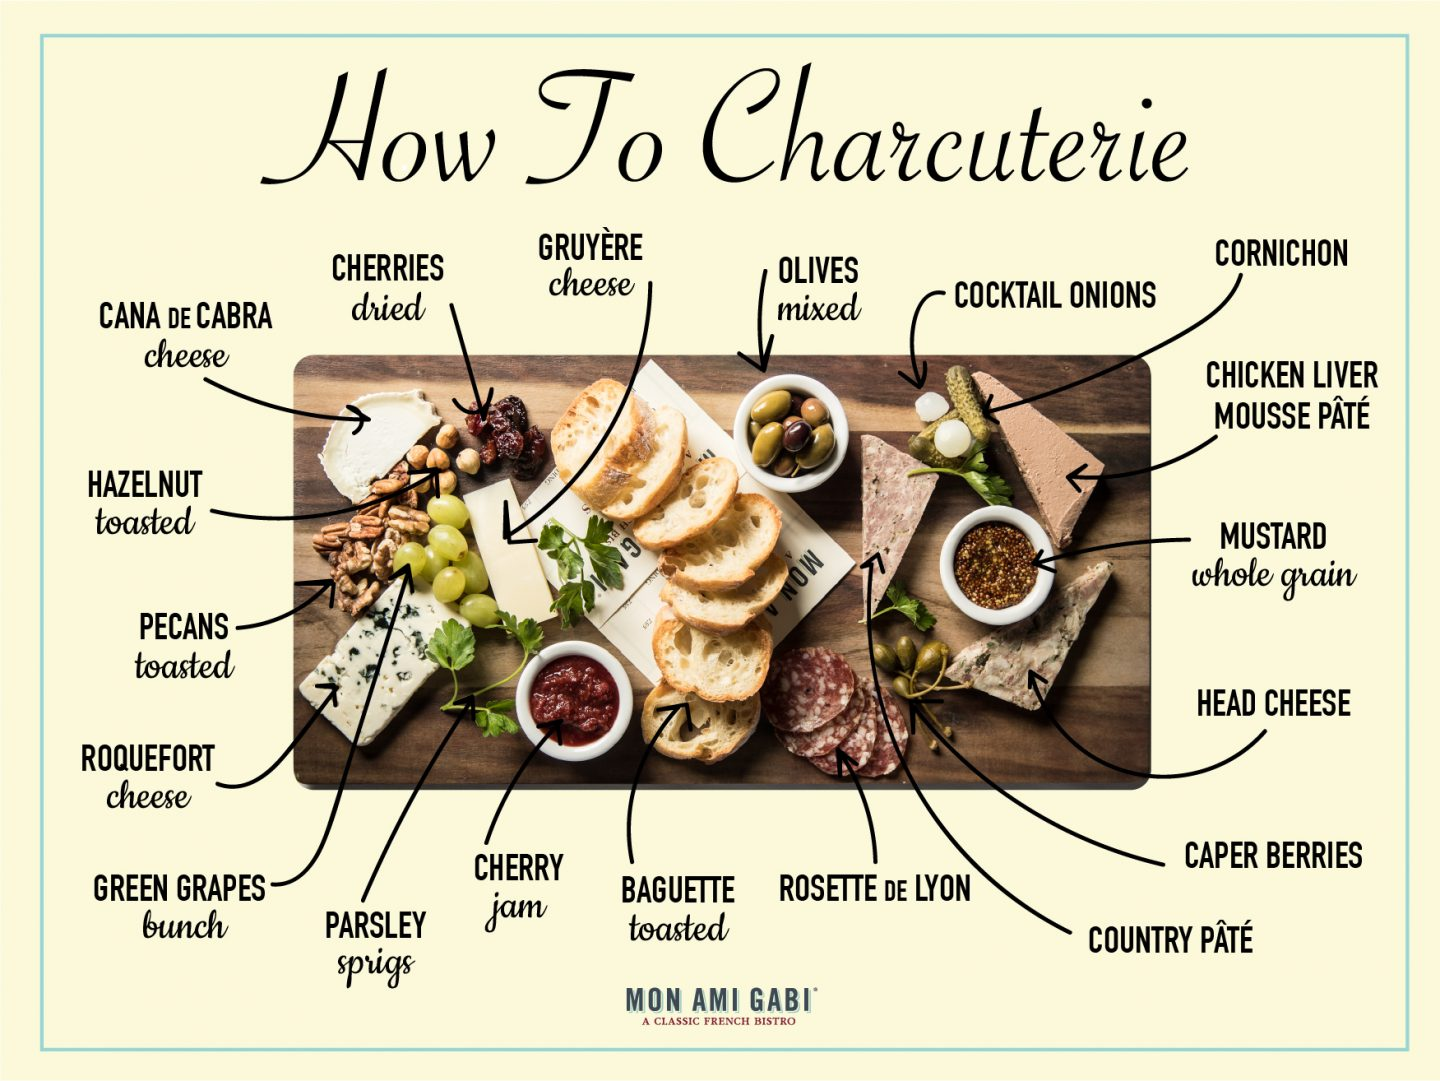 Let us help guide you through making the perfect Charcuterie board!